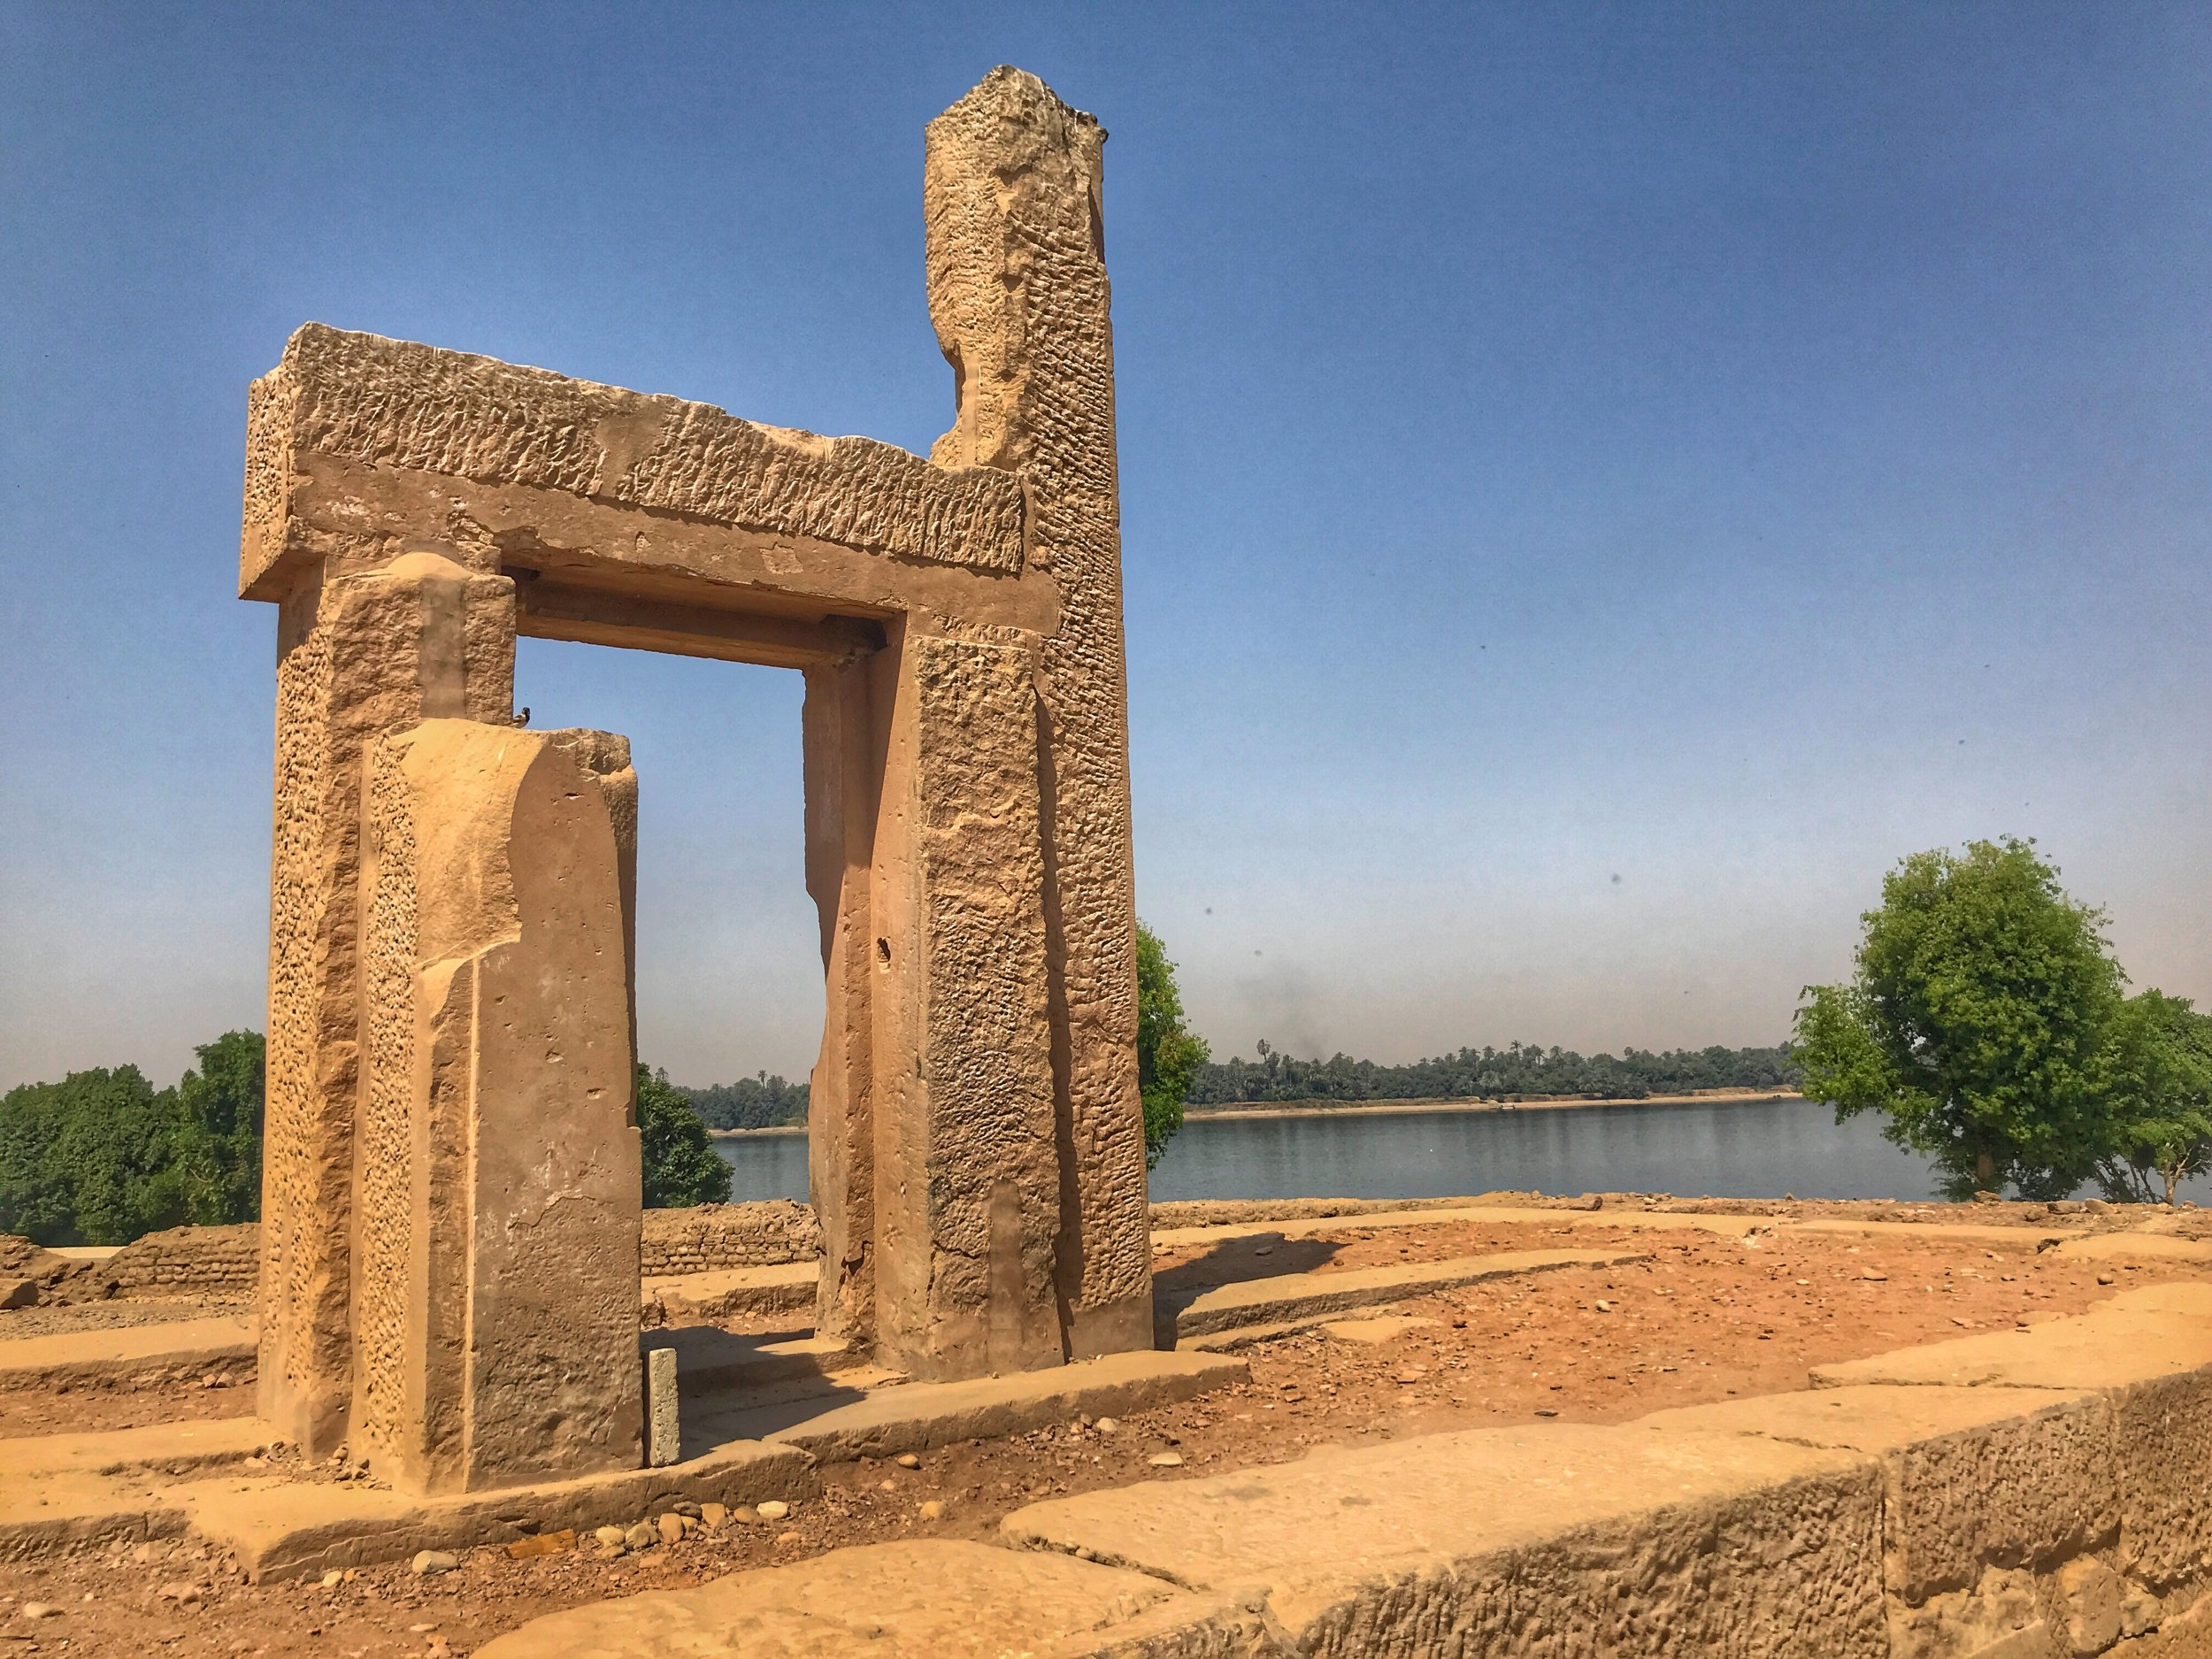 The temple stands on the banks of the Nile, and teams are now working to protect it from erosion